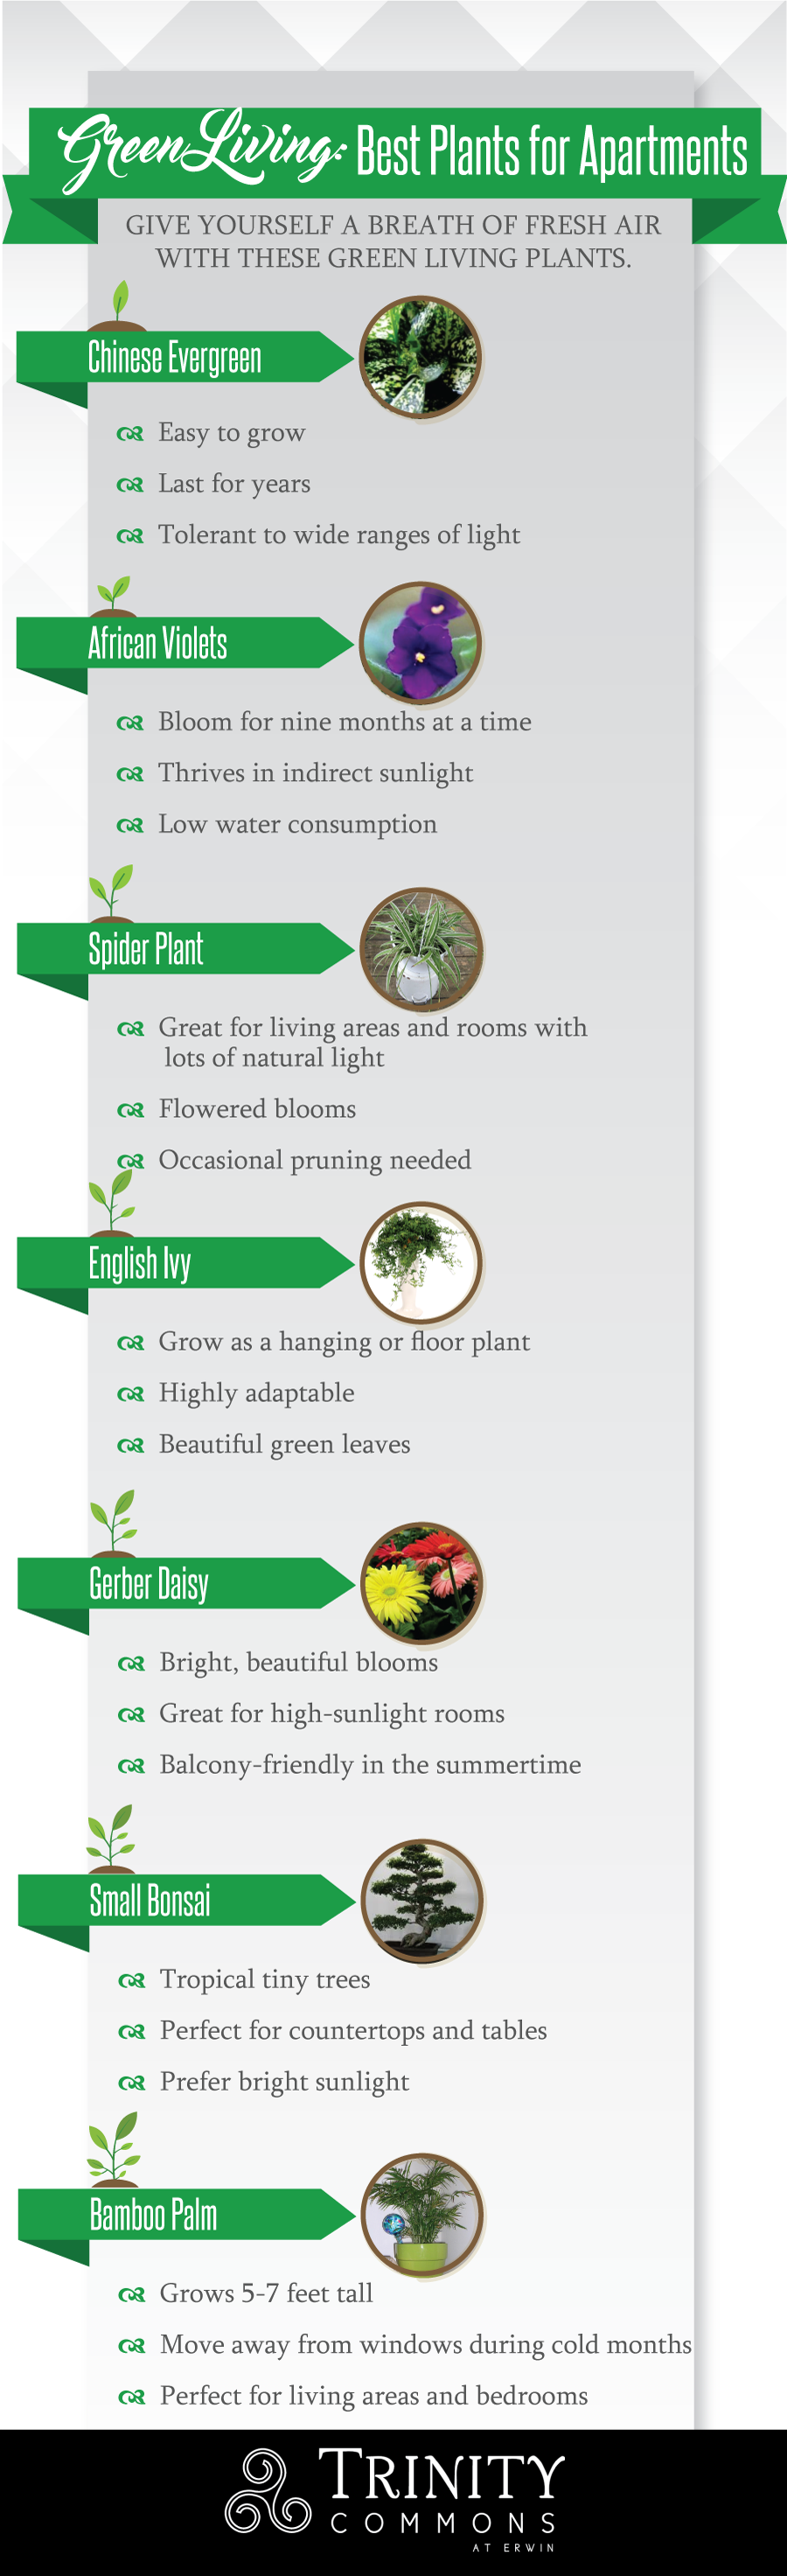 Best Plants for Apartments #infographic